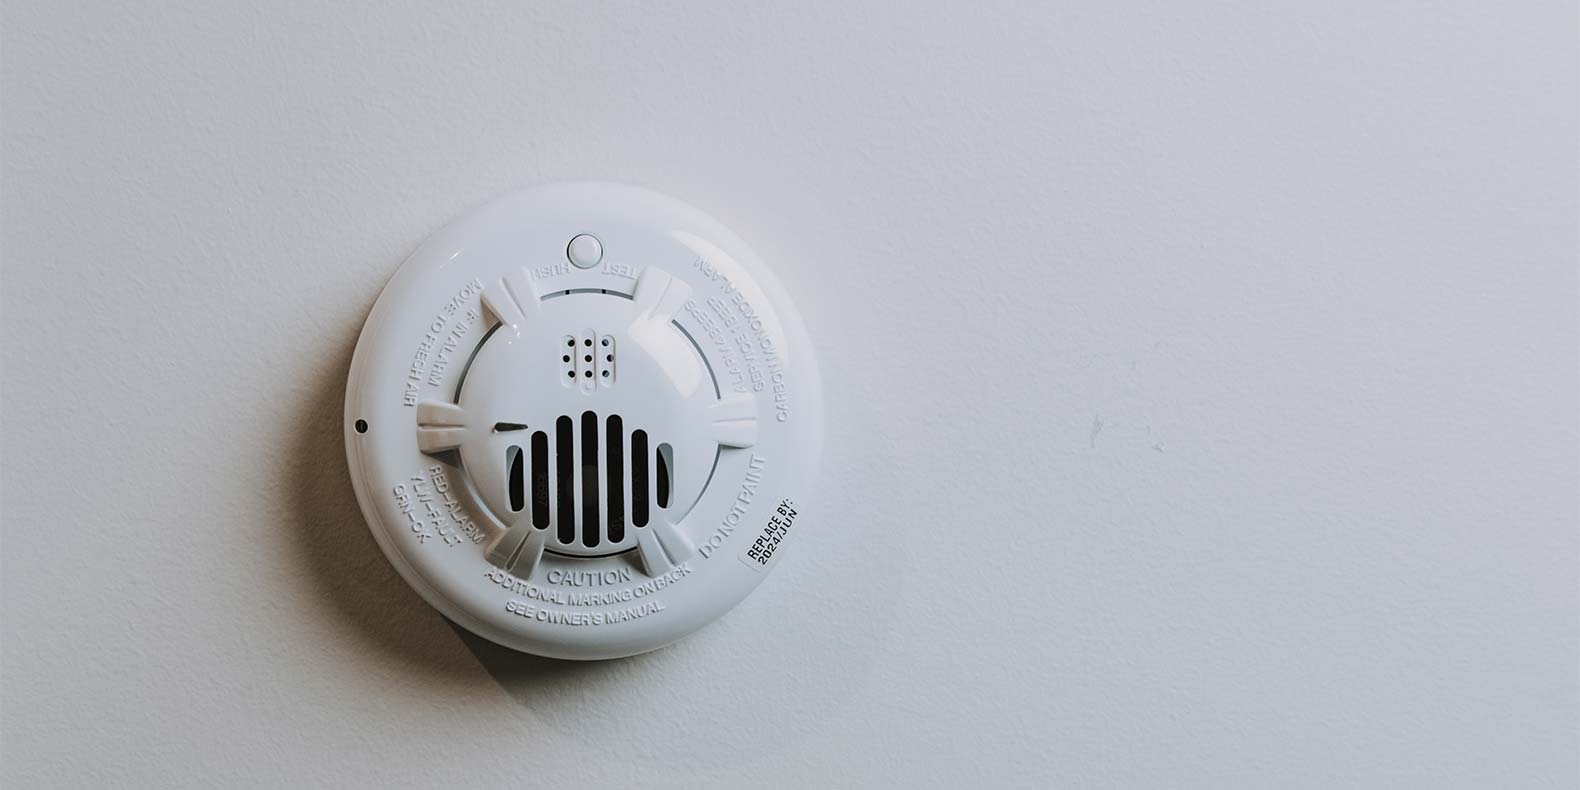 Where to Place Carbon Monoxide Detectors in Your Home